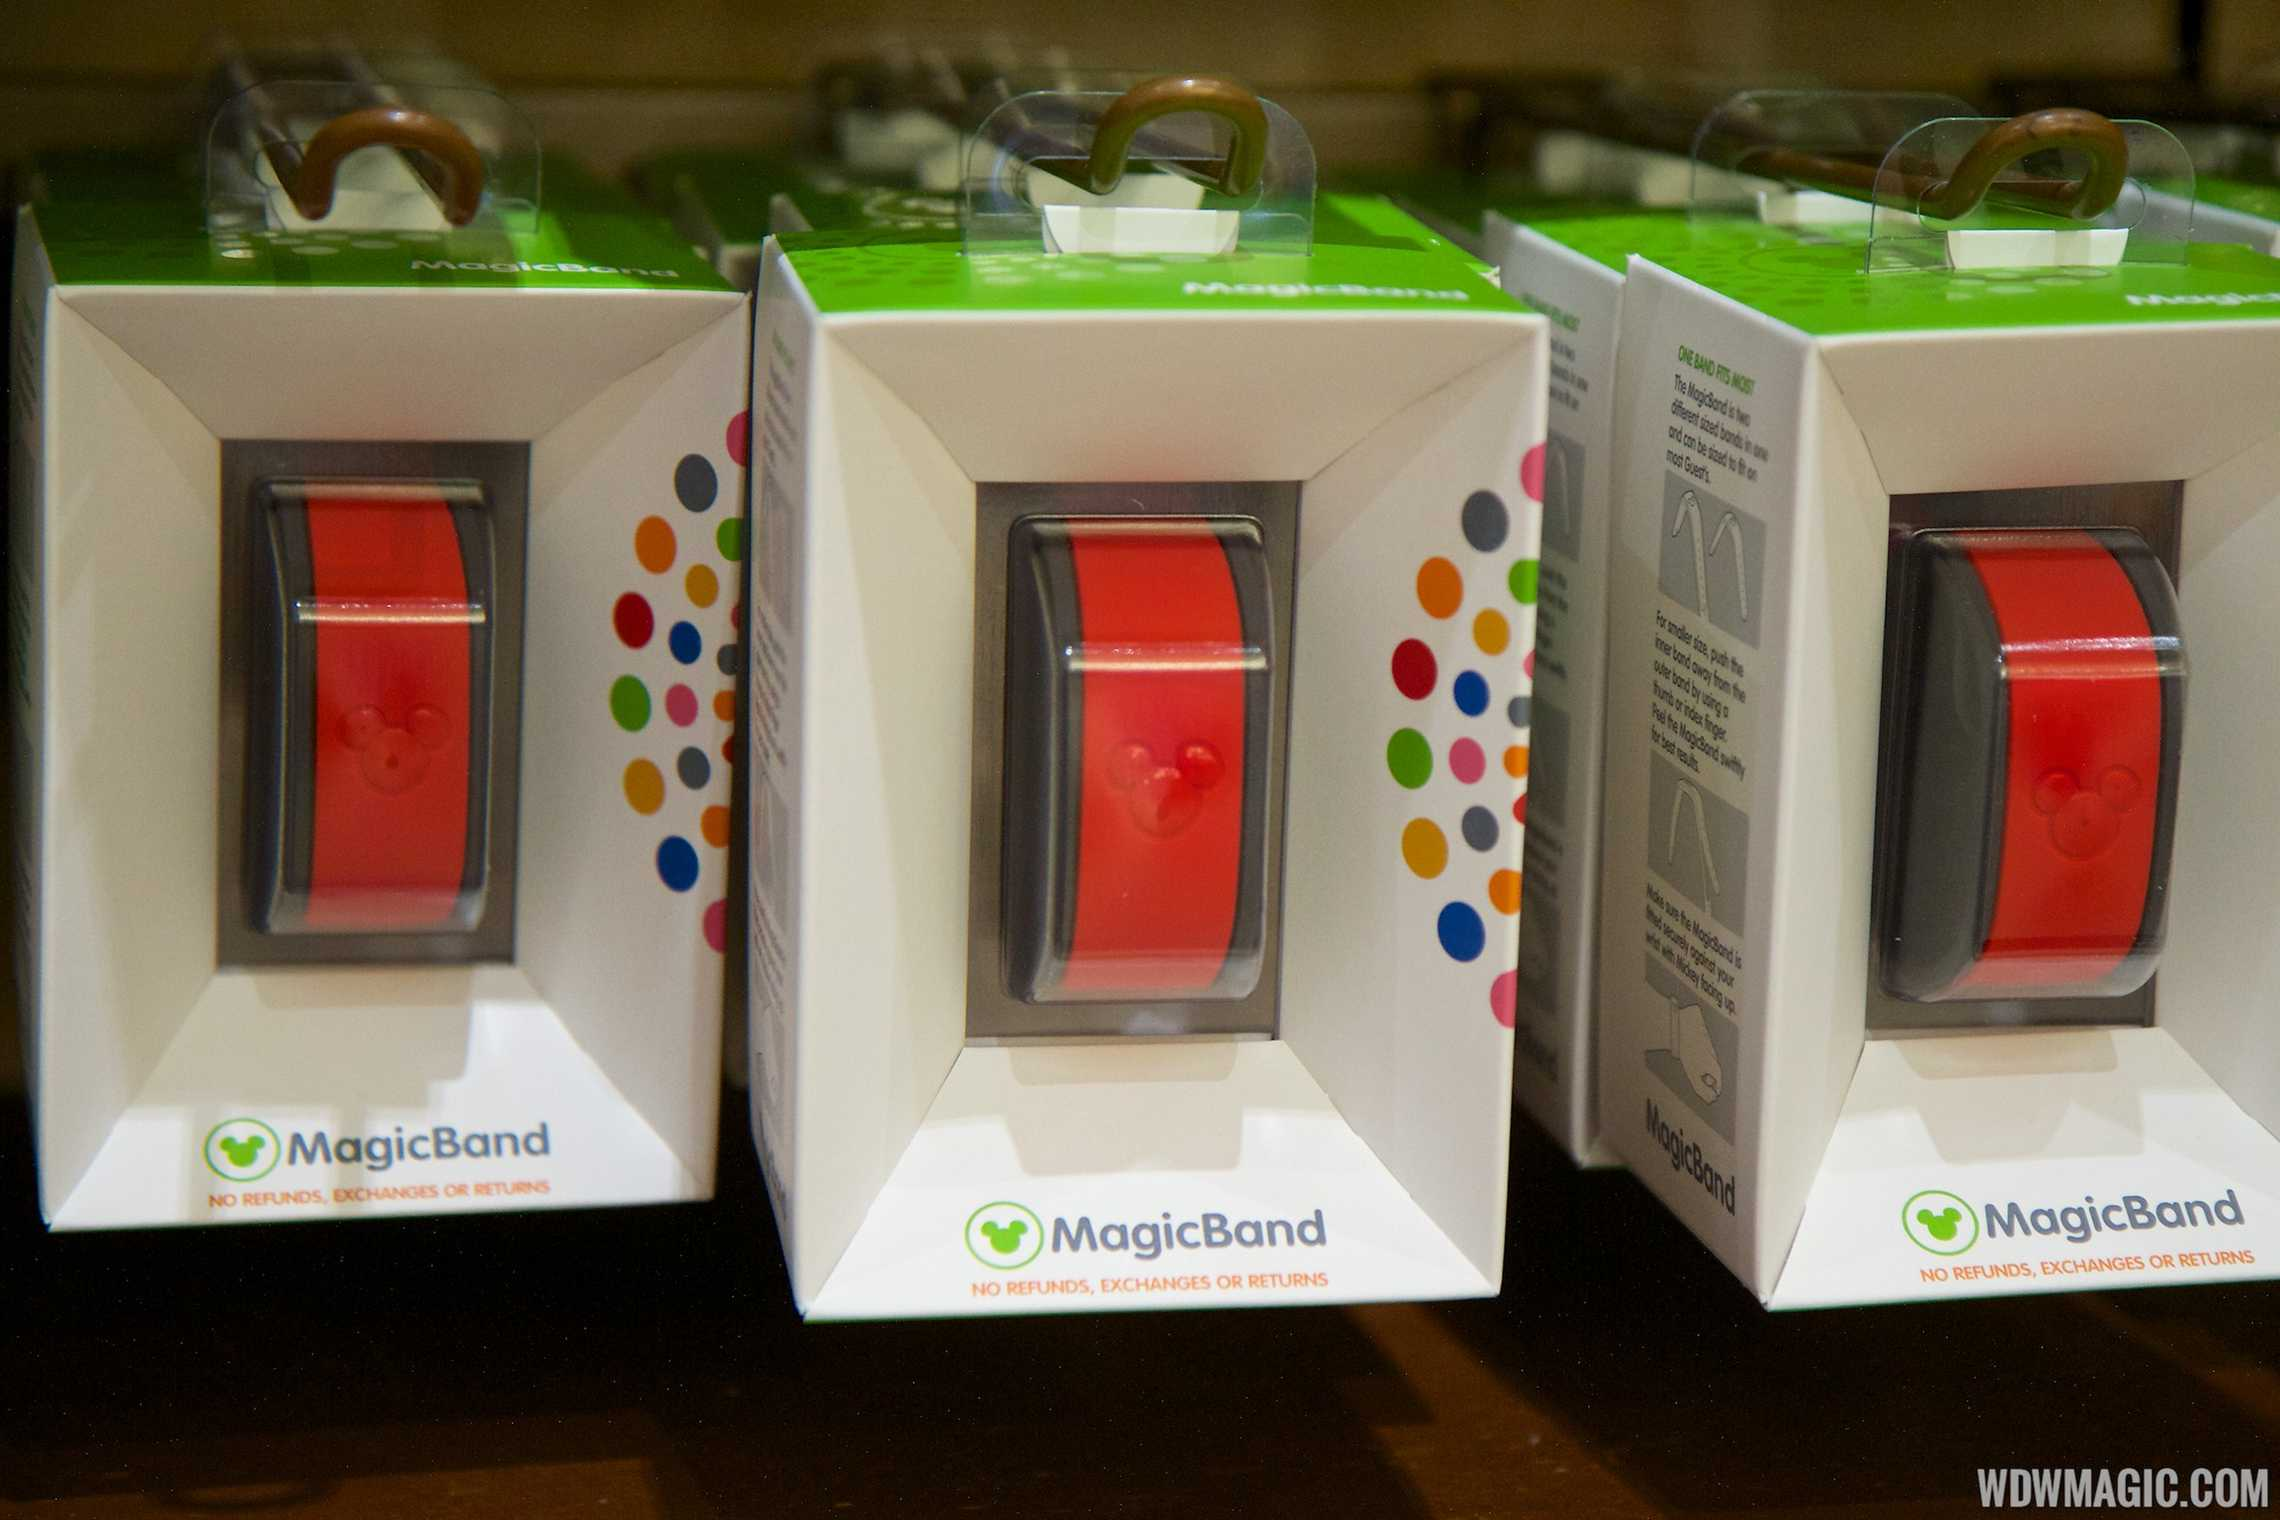 MagicBand retail display